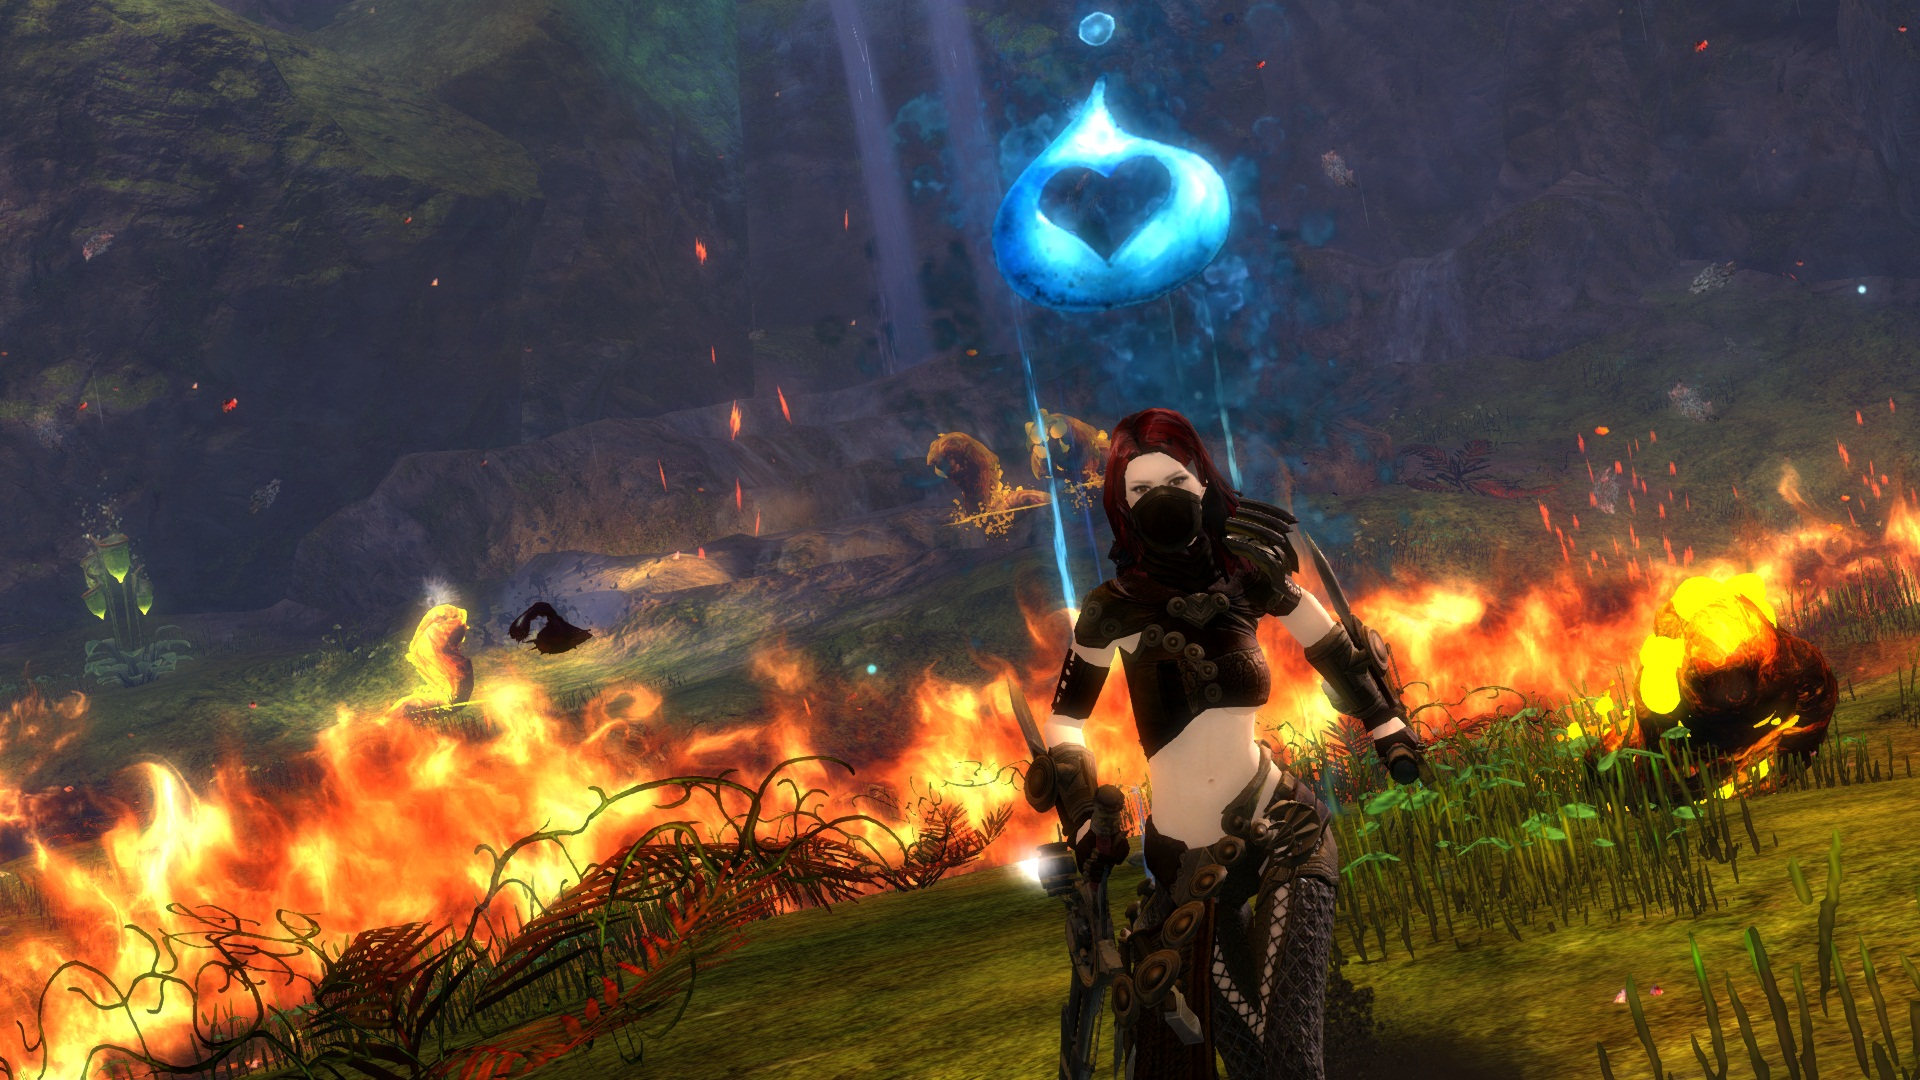 Guild Wars 2 Twilight Assault